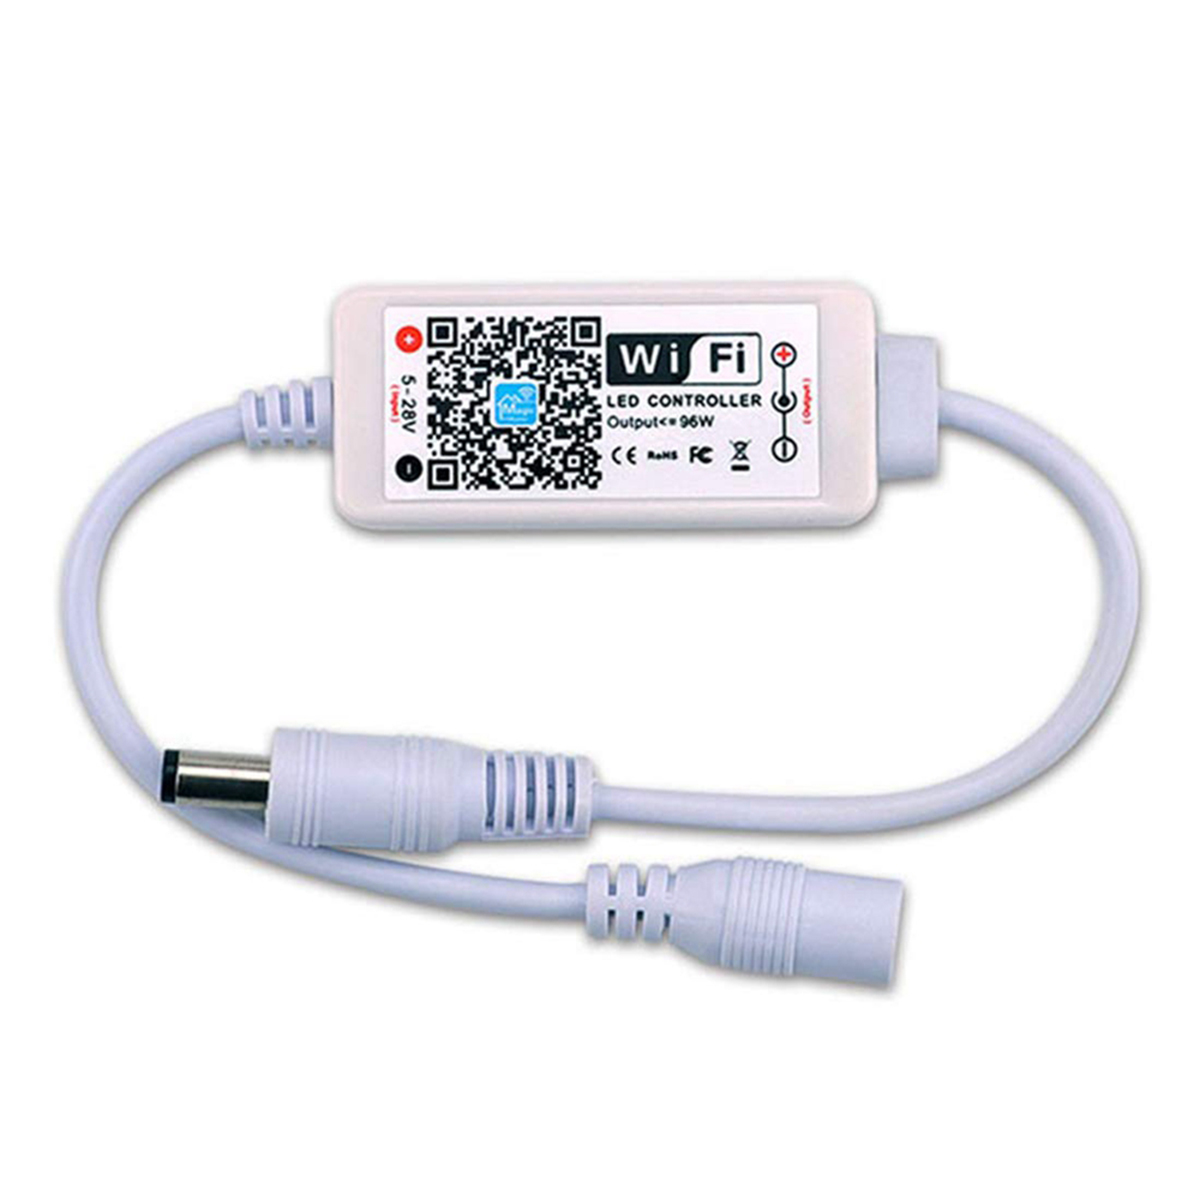 Smart Single Color <font><b>LED</b></font> WiFi Controller 5-28V 96W <font><b>LED</b></font> Strip Light <font><b>Remote</b></font> Controller Support Voice Control image